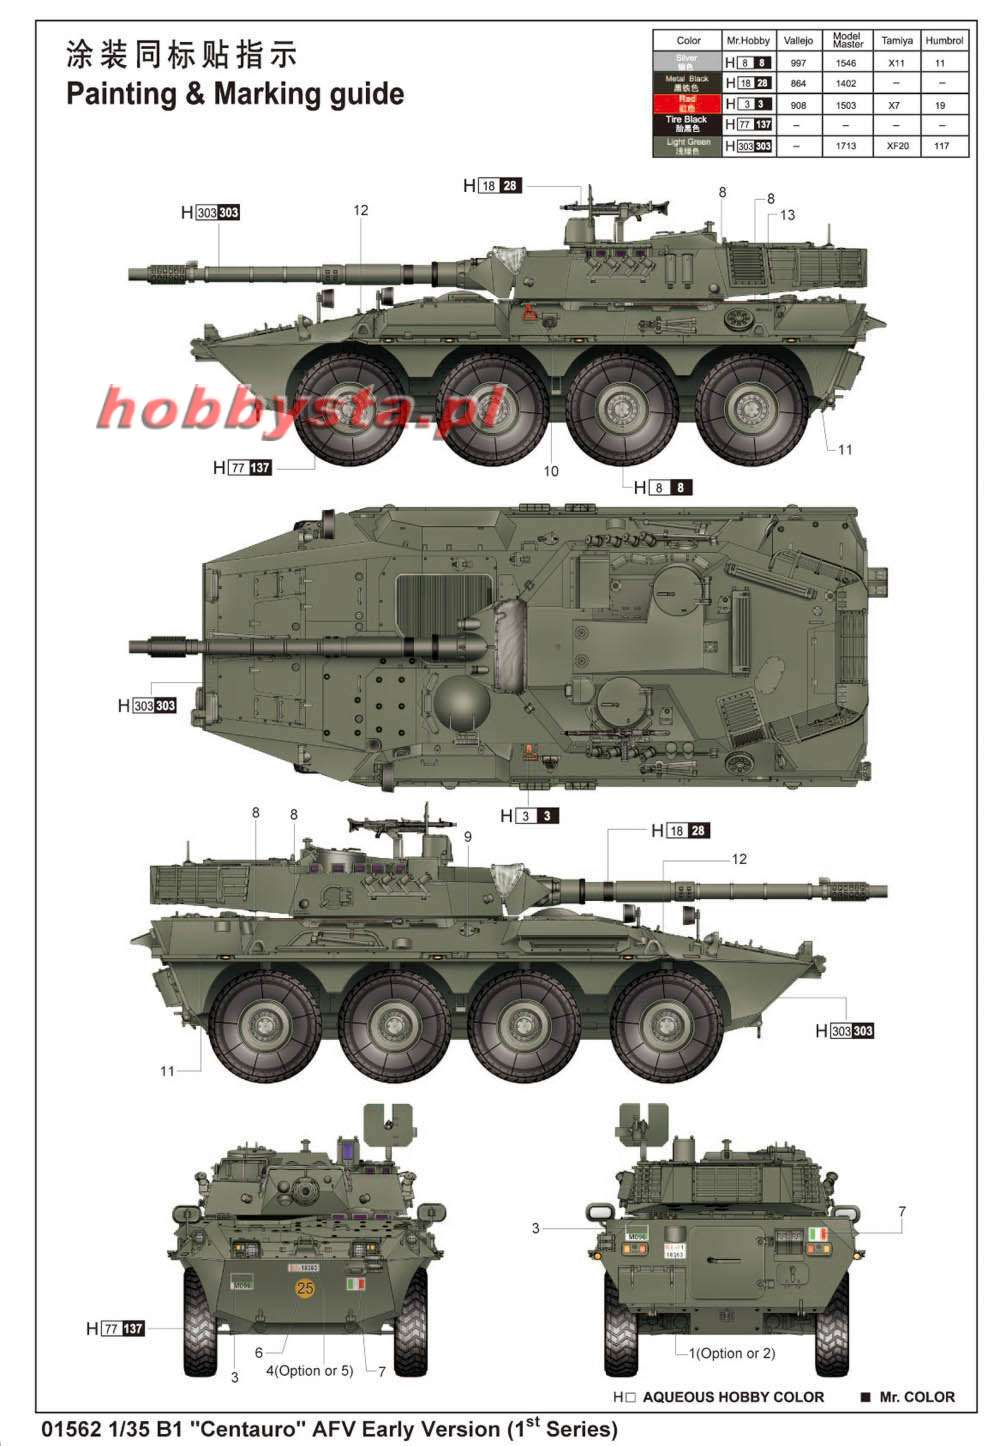 B1 Centauro Afv Early Verslon 1 Quot Series Trumpeter 01562